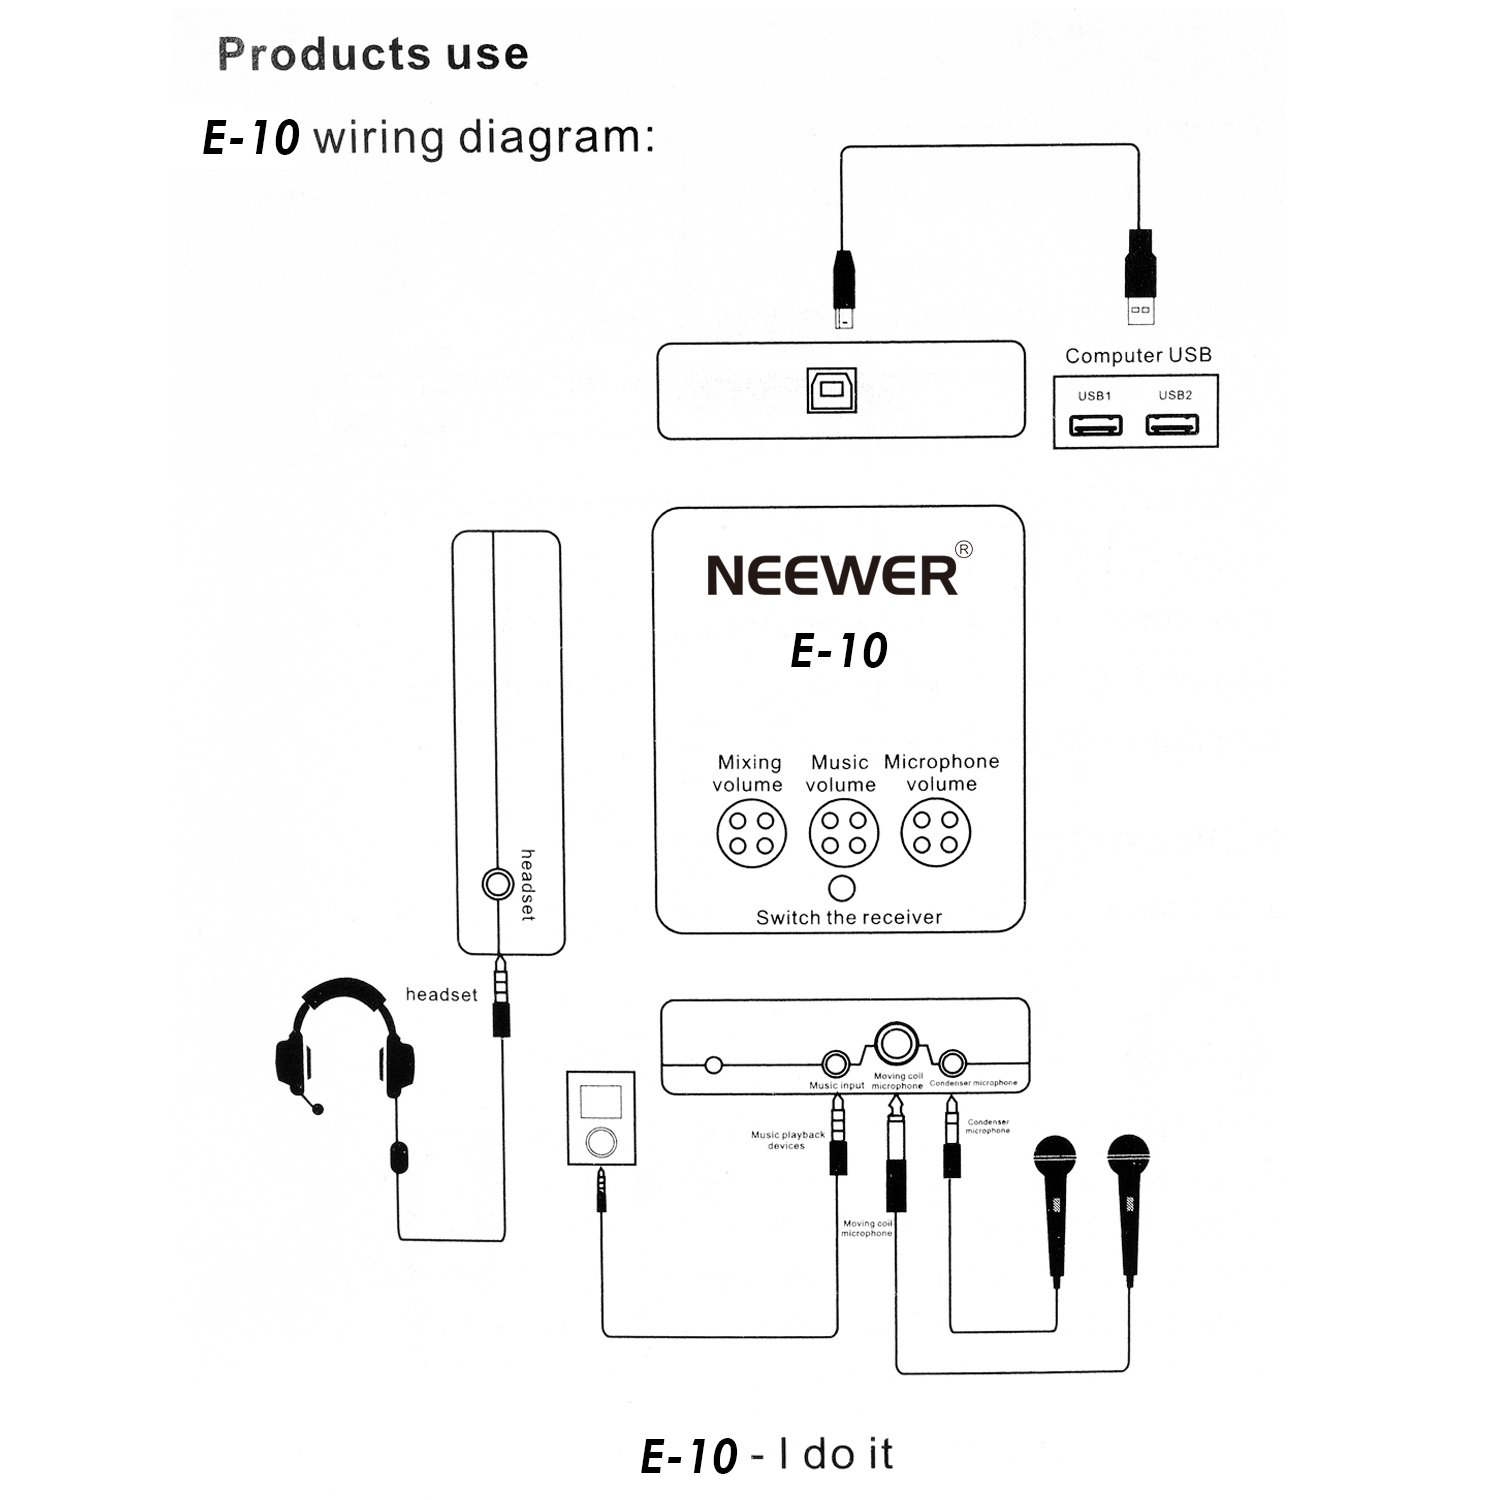 Neewer External Usb Sound Card White Digital Voice Record And Playback Circuit Schematic Computers Accessories